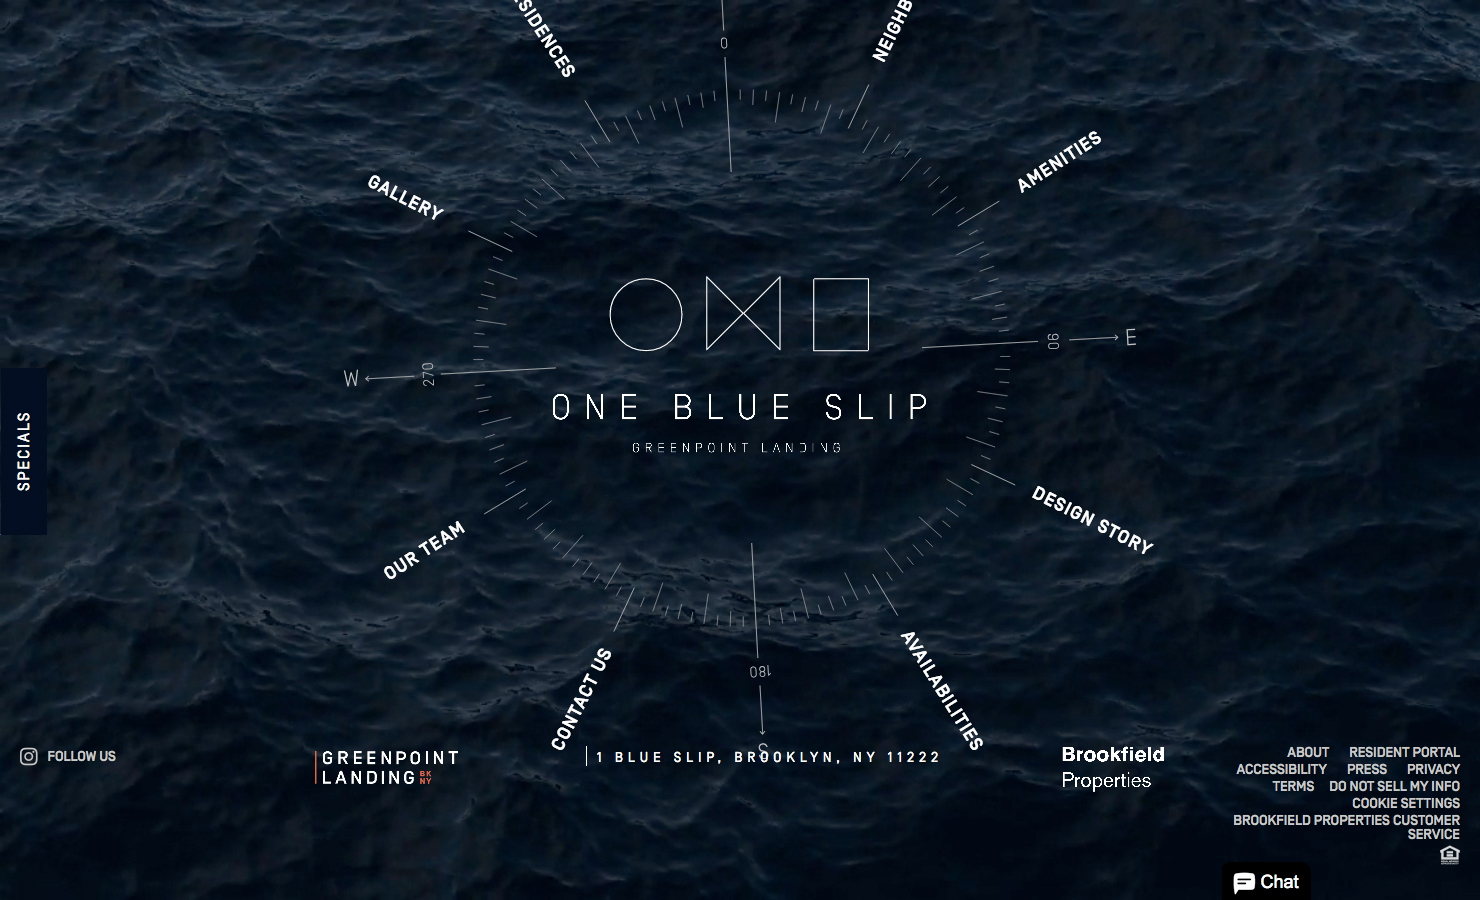 One Blue Slip